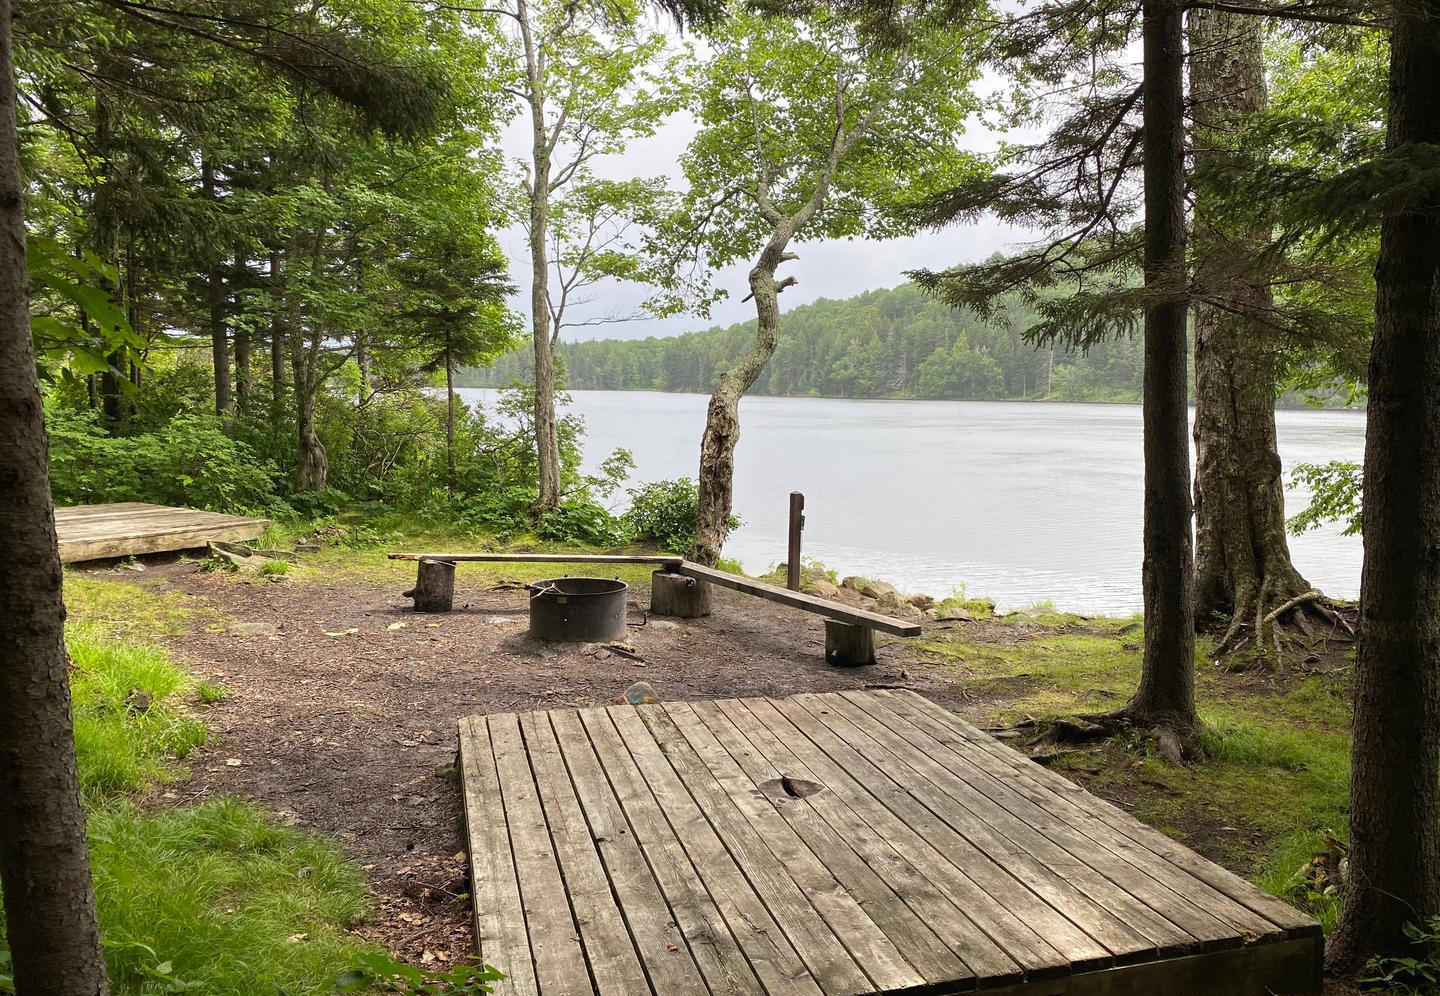 tent pads, fire ring, and benches campsite 9